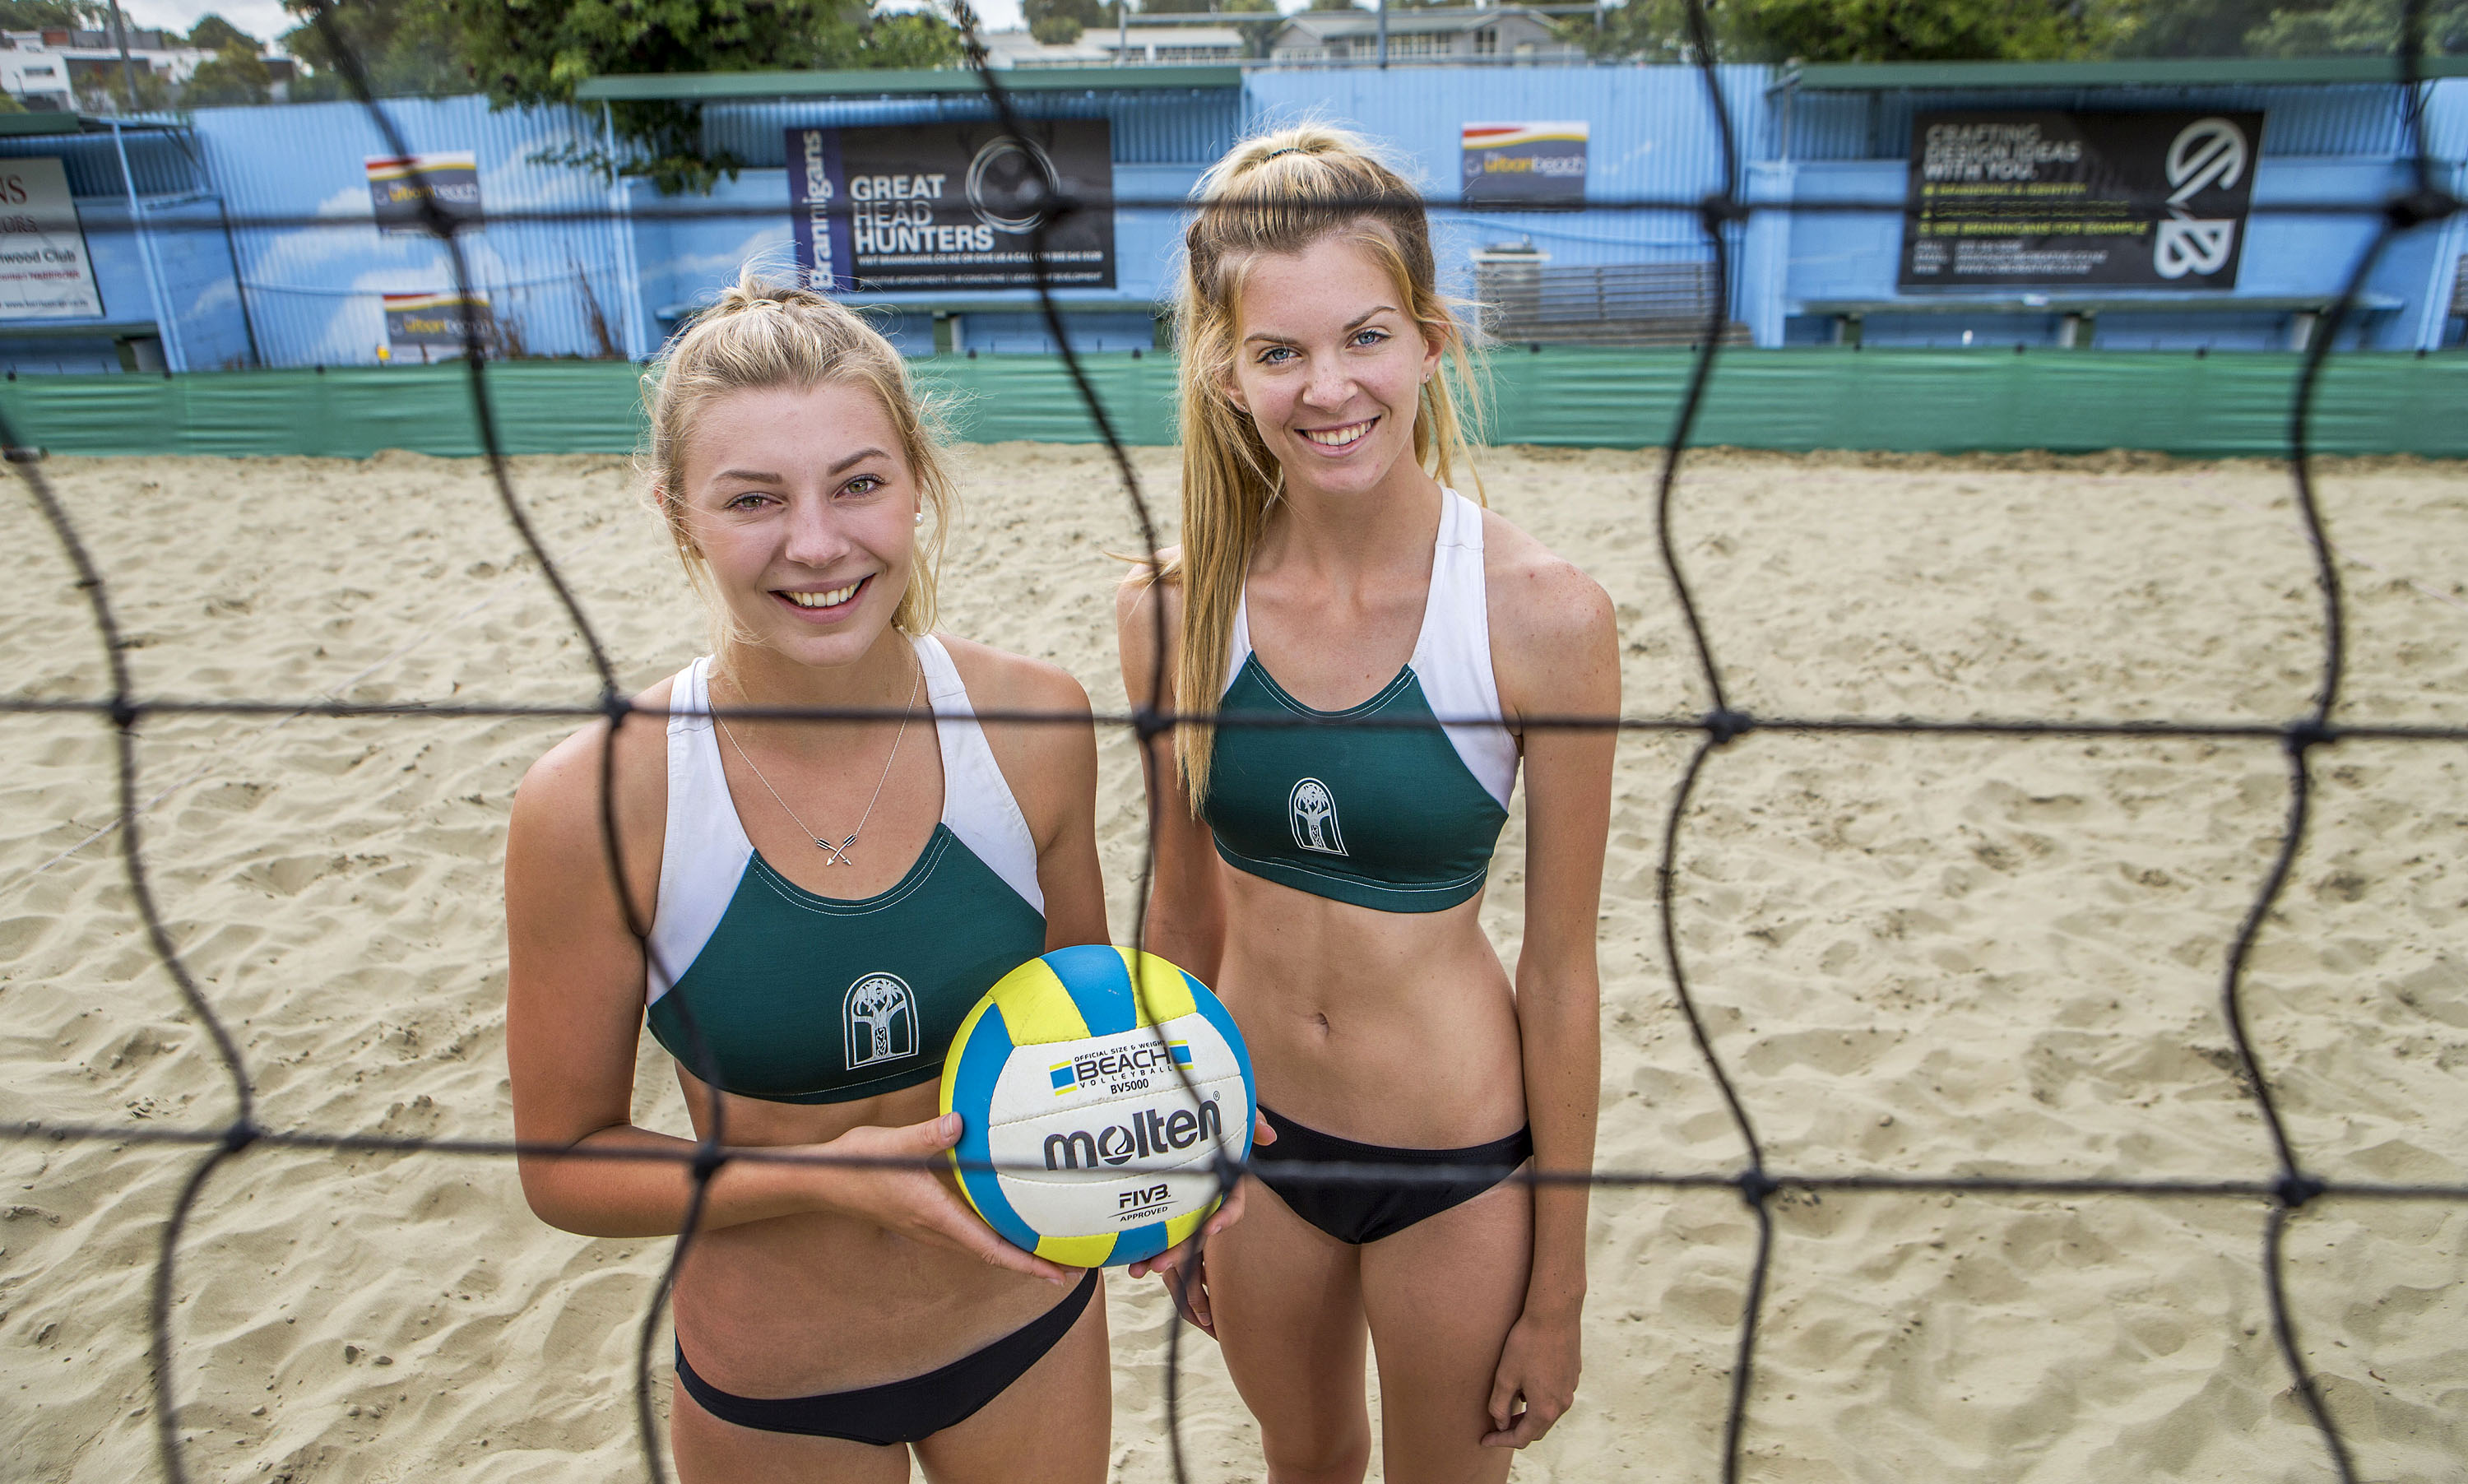 23022016 News Photo: John Kirk-Anderson/Fairfax  Alice Zeimann, 17, left, and Chynae Stark, 17, national beach volleyball winners.